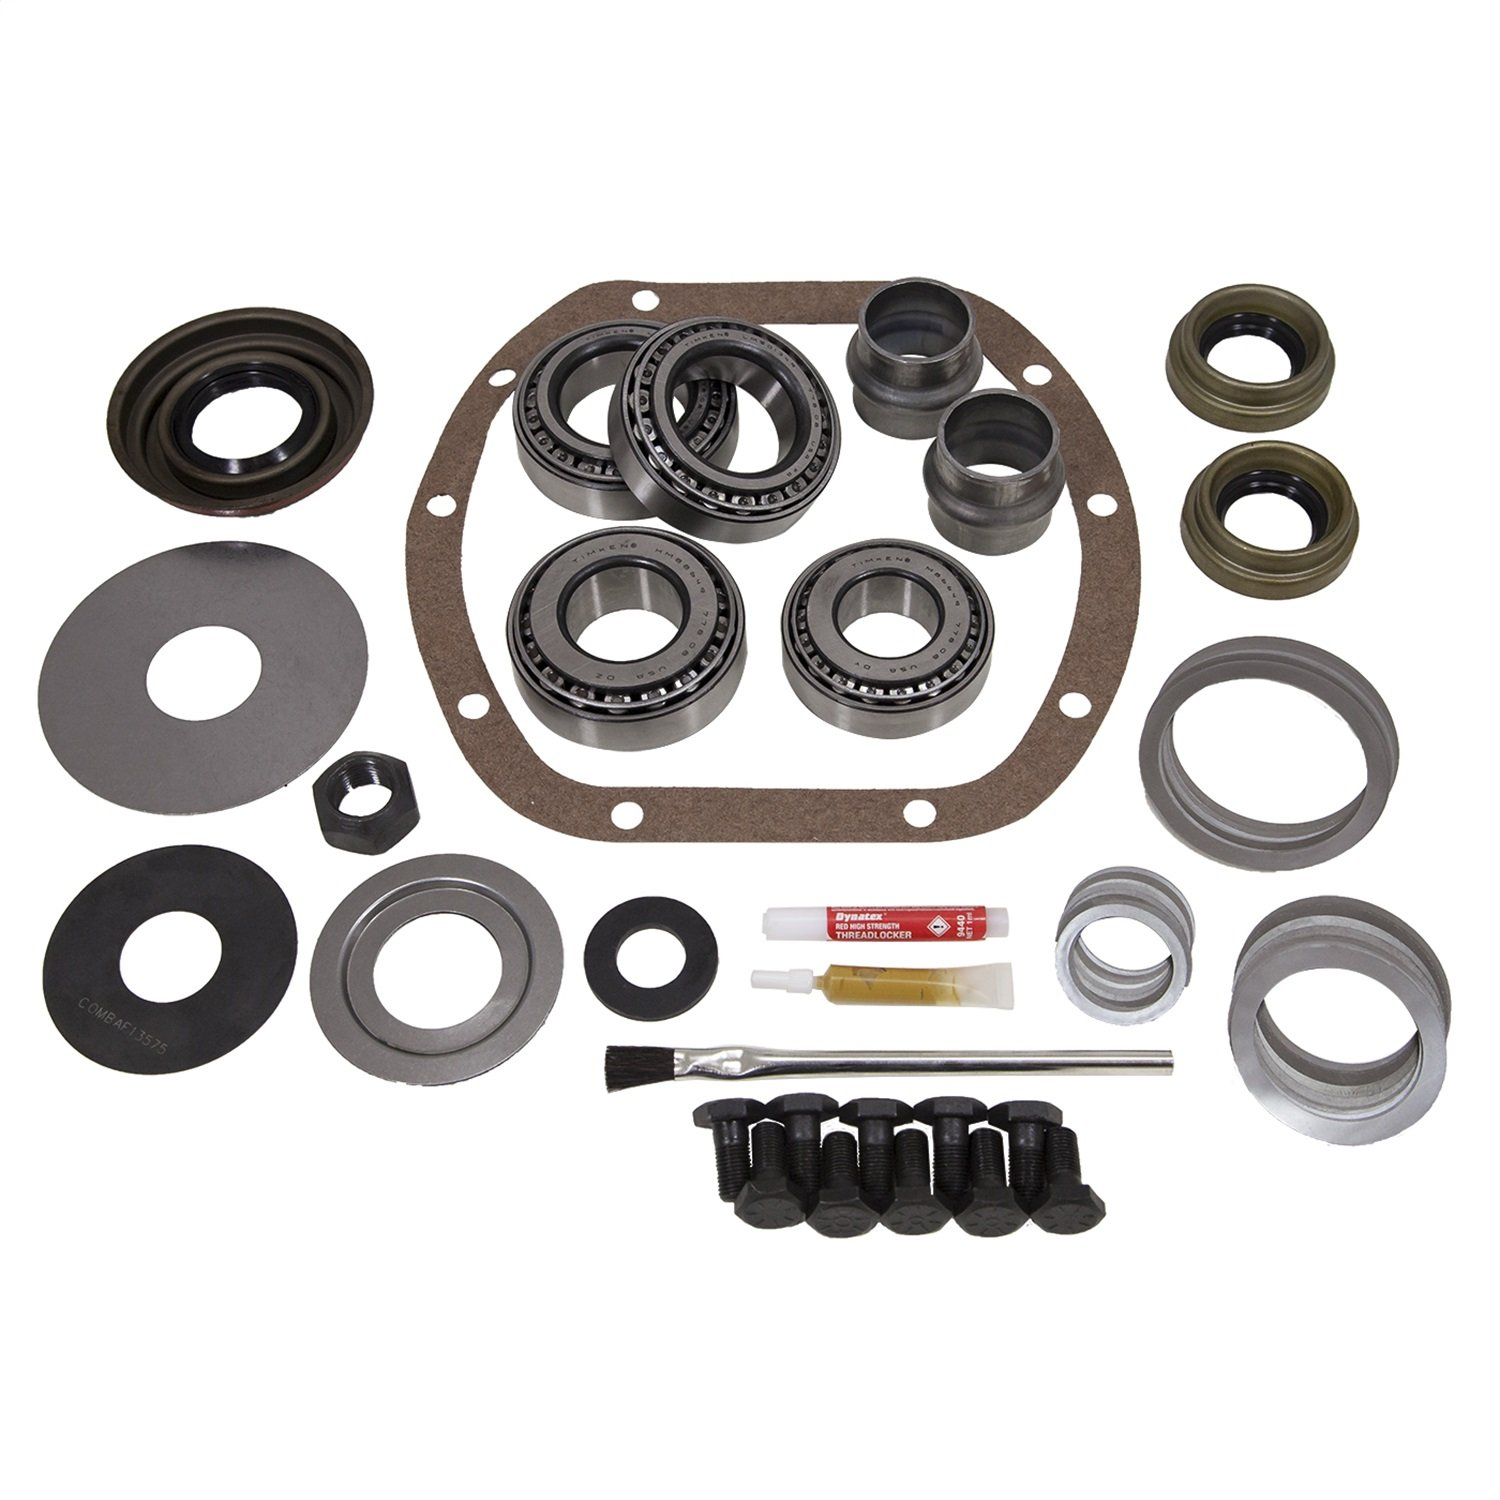 Master Overhaul Kit for Dana 30 Short Pinion Front Differential USA Standard Gear ZK D30-TJ